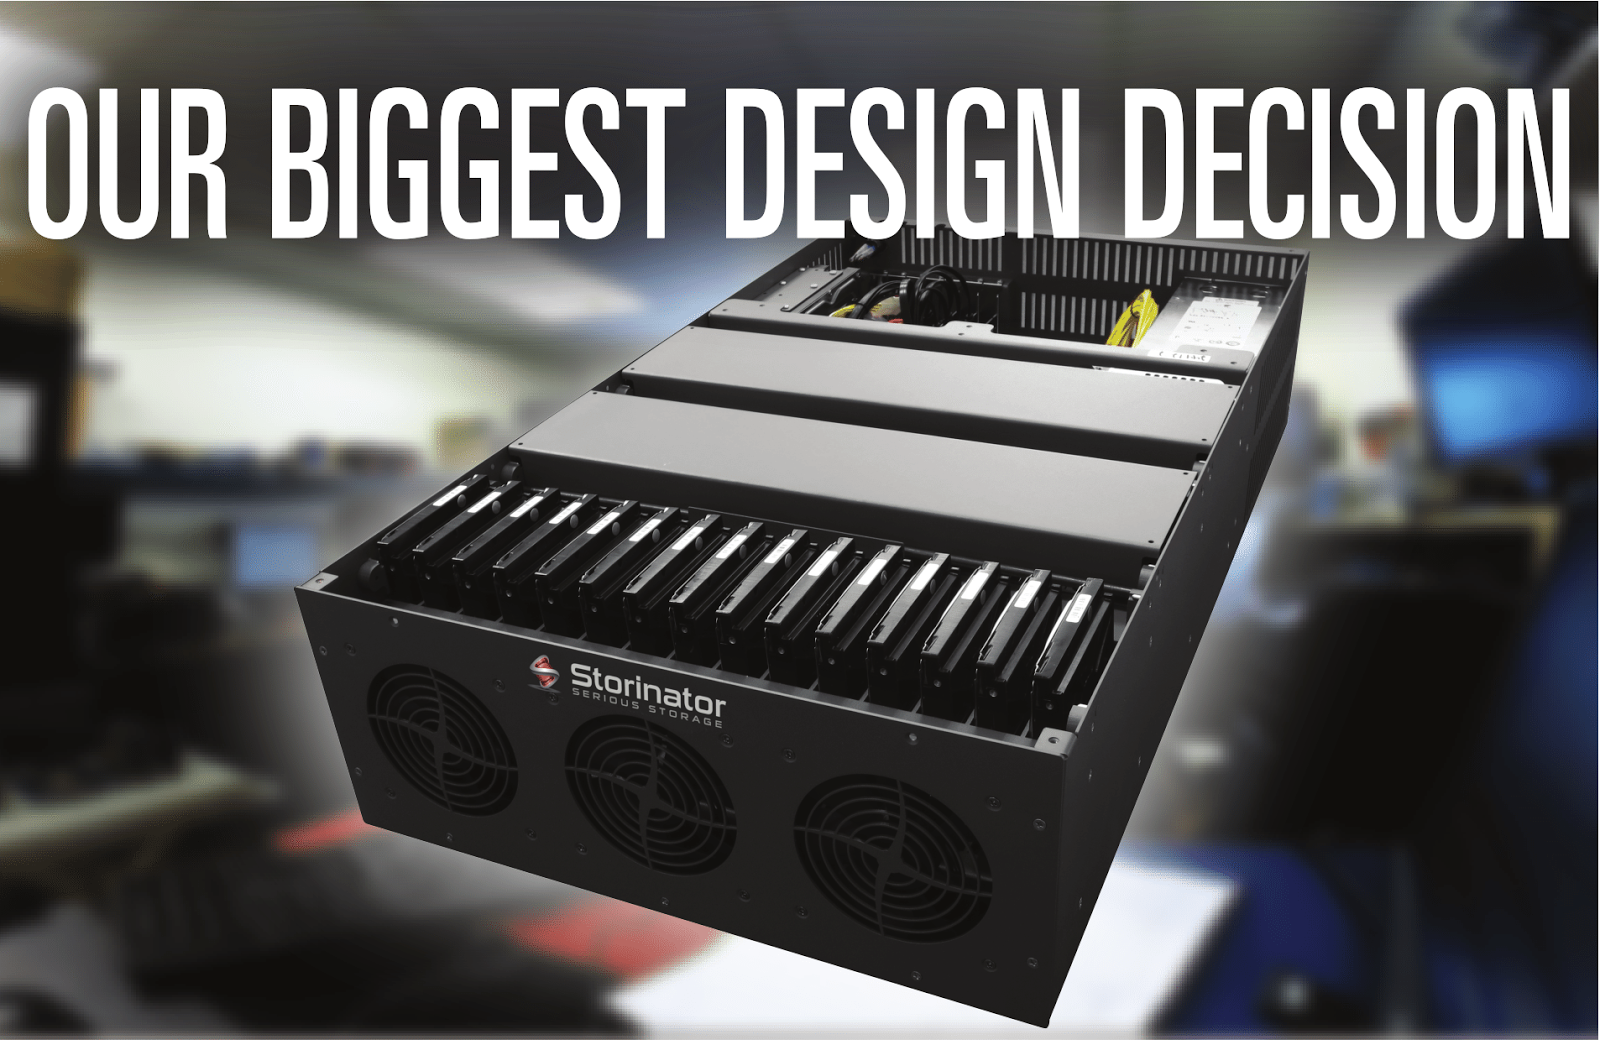 45 Drives: Our Biggest Design Decision - Direct Wired or